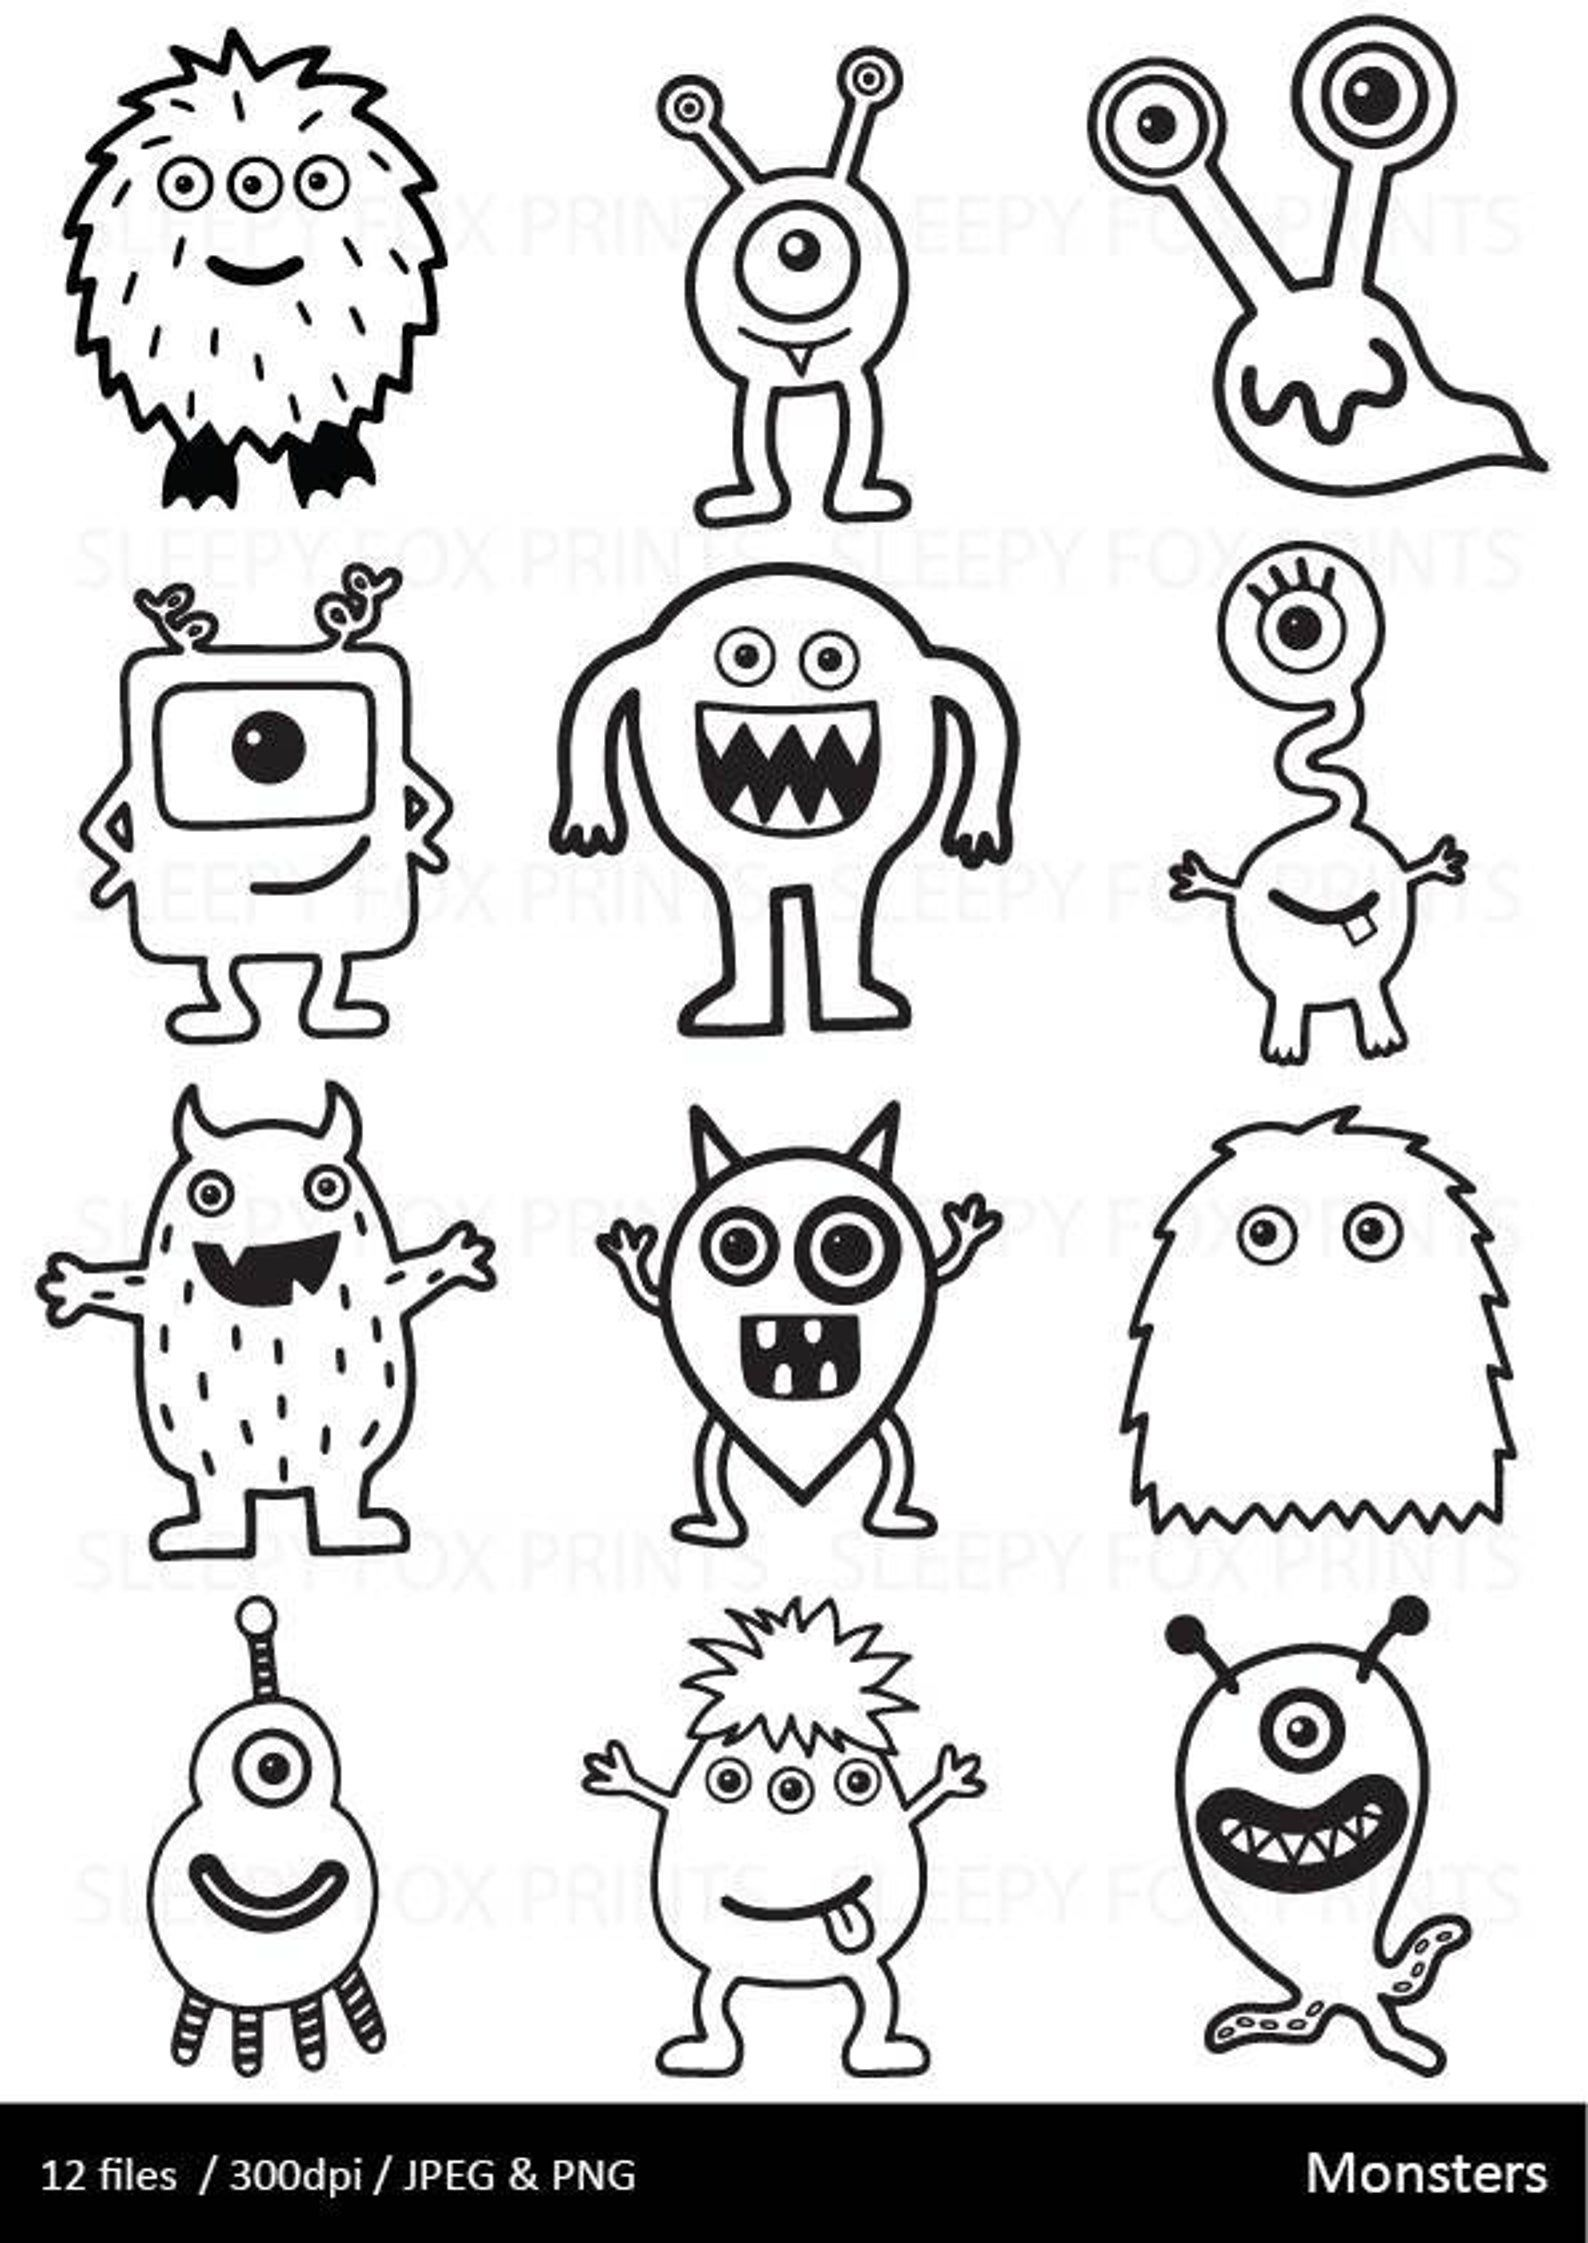 Monsters Clipart Black And White Monster Clip Art Etsy Monster Clipart Easy Doodle Art Doodle Art